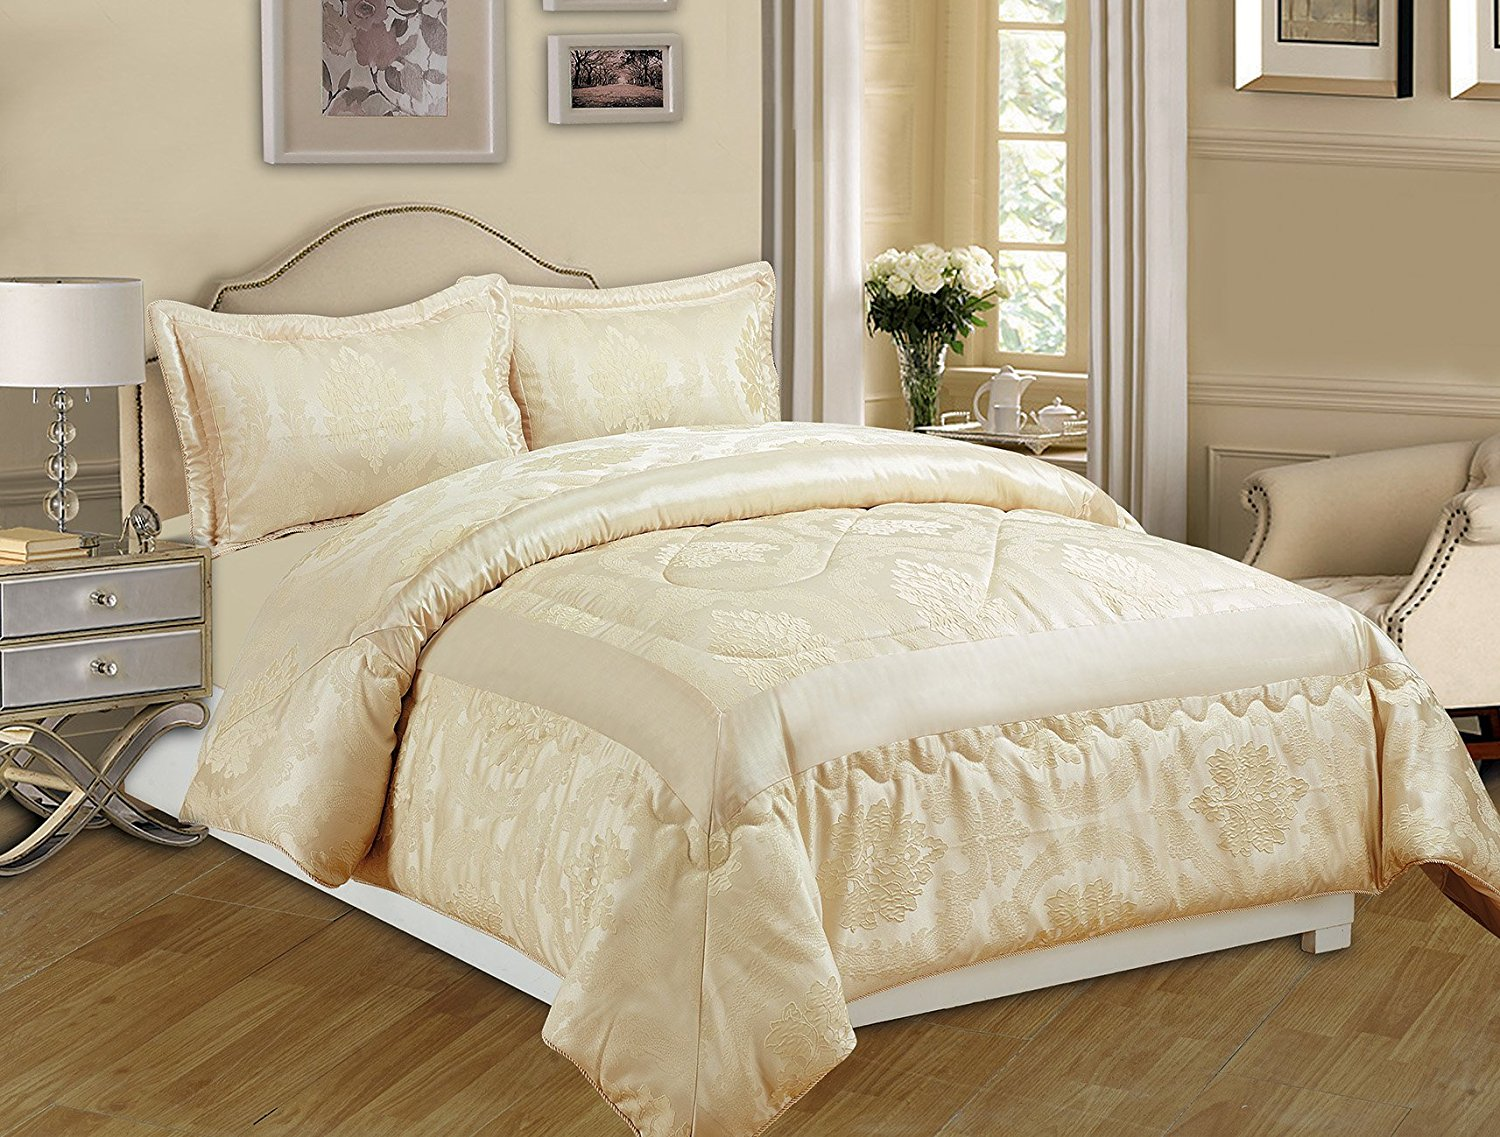 Black And Cream Comforter Set